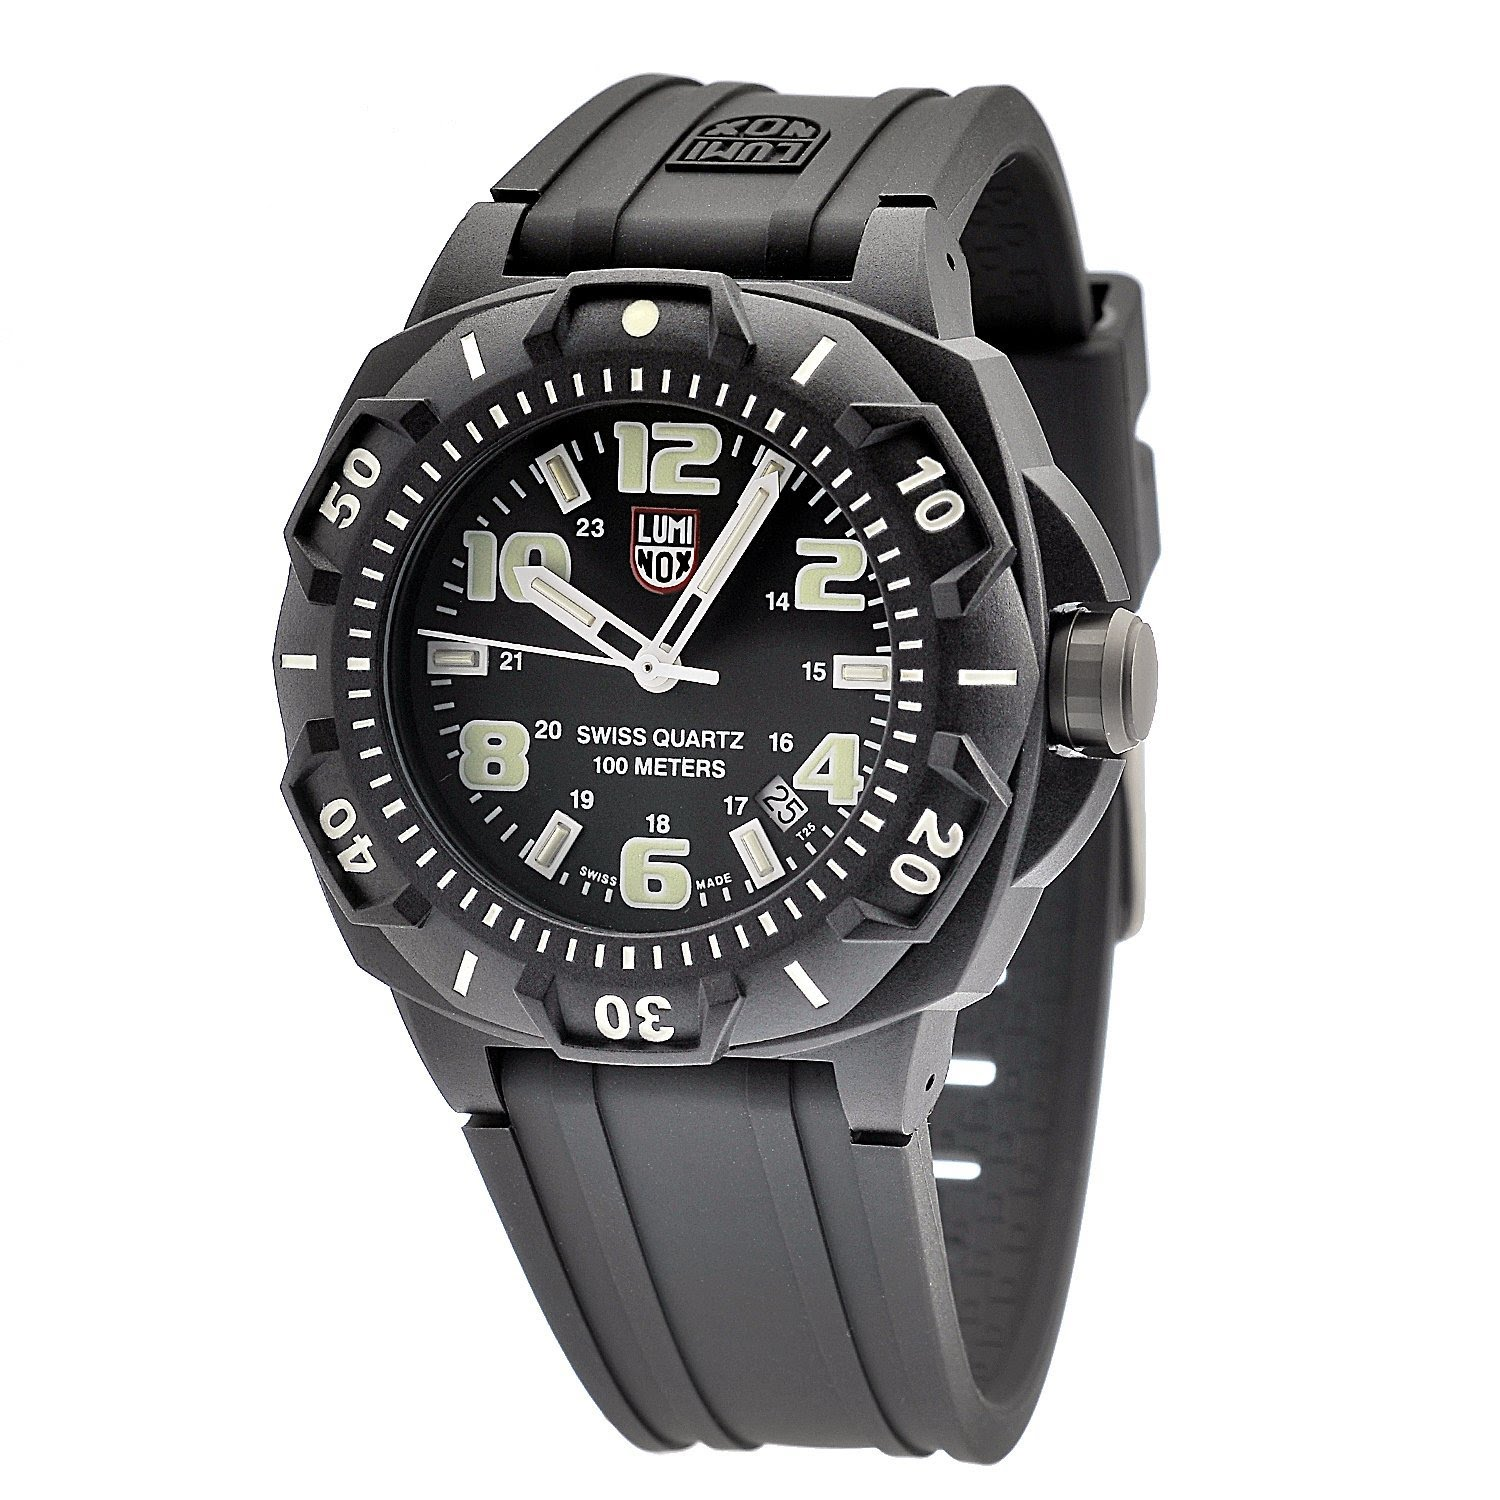 Luminox รุ่น LUMINOX 0201 SL. Man's SEMTRY 0200 Series Watch